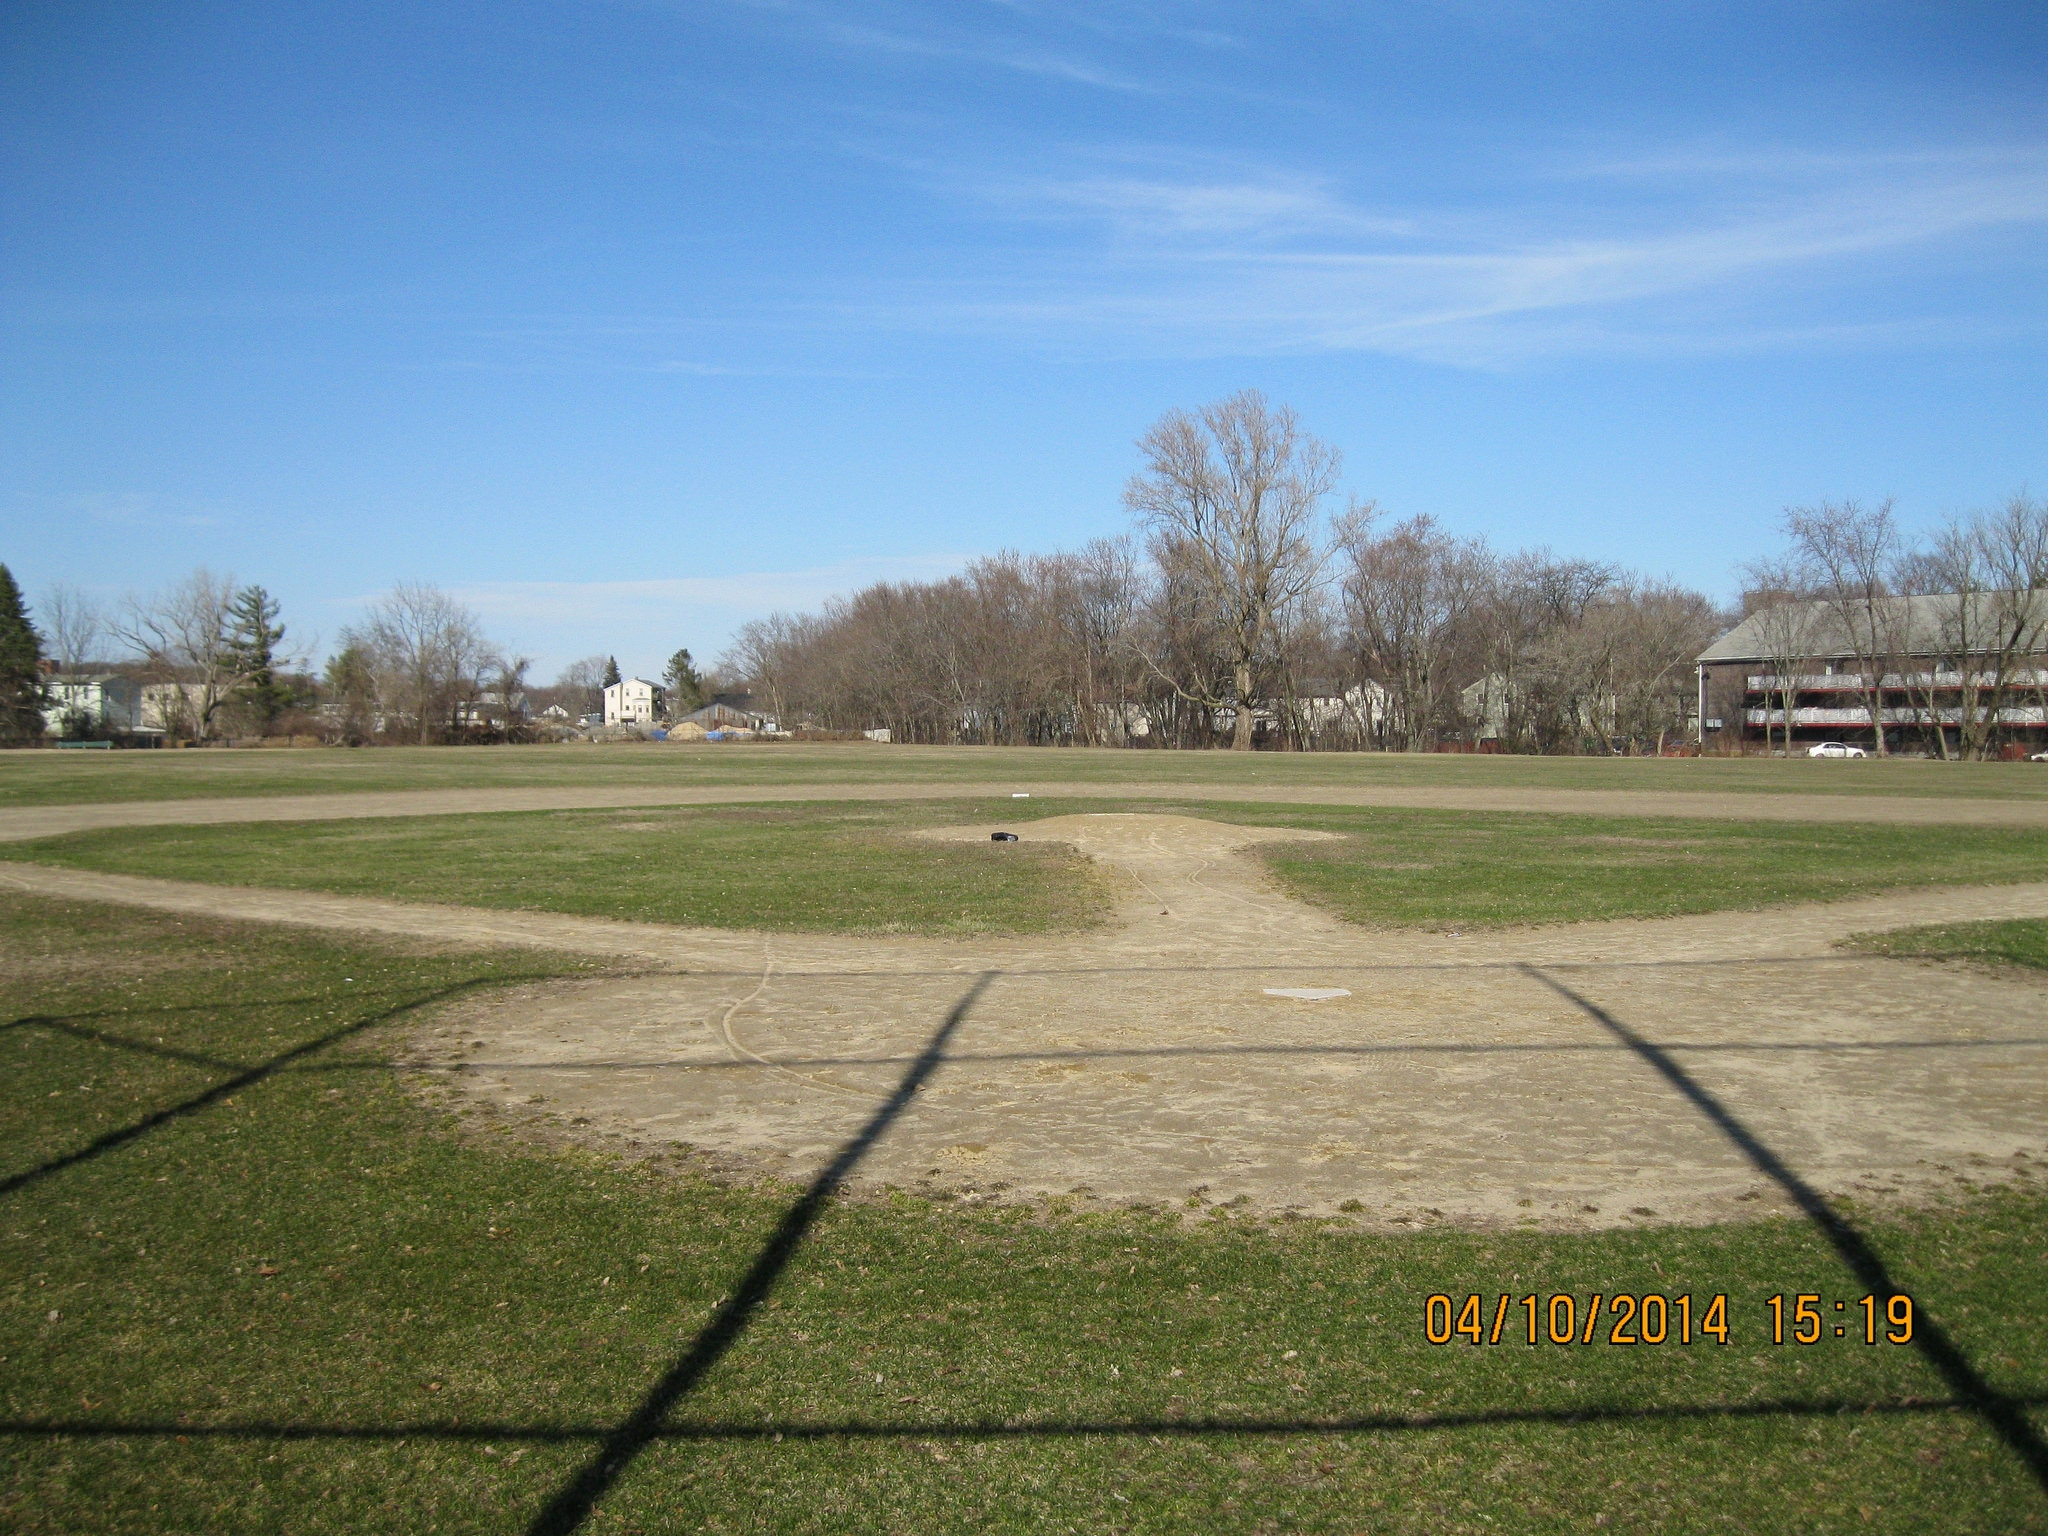 One of three ball fields at Mary Dennison Park, South Framingham, MA